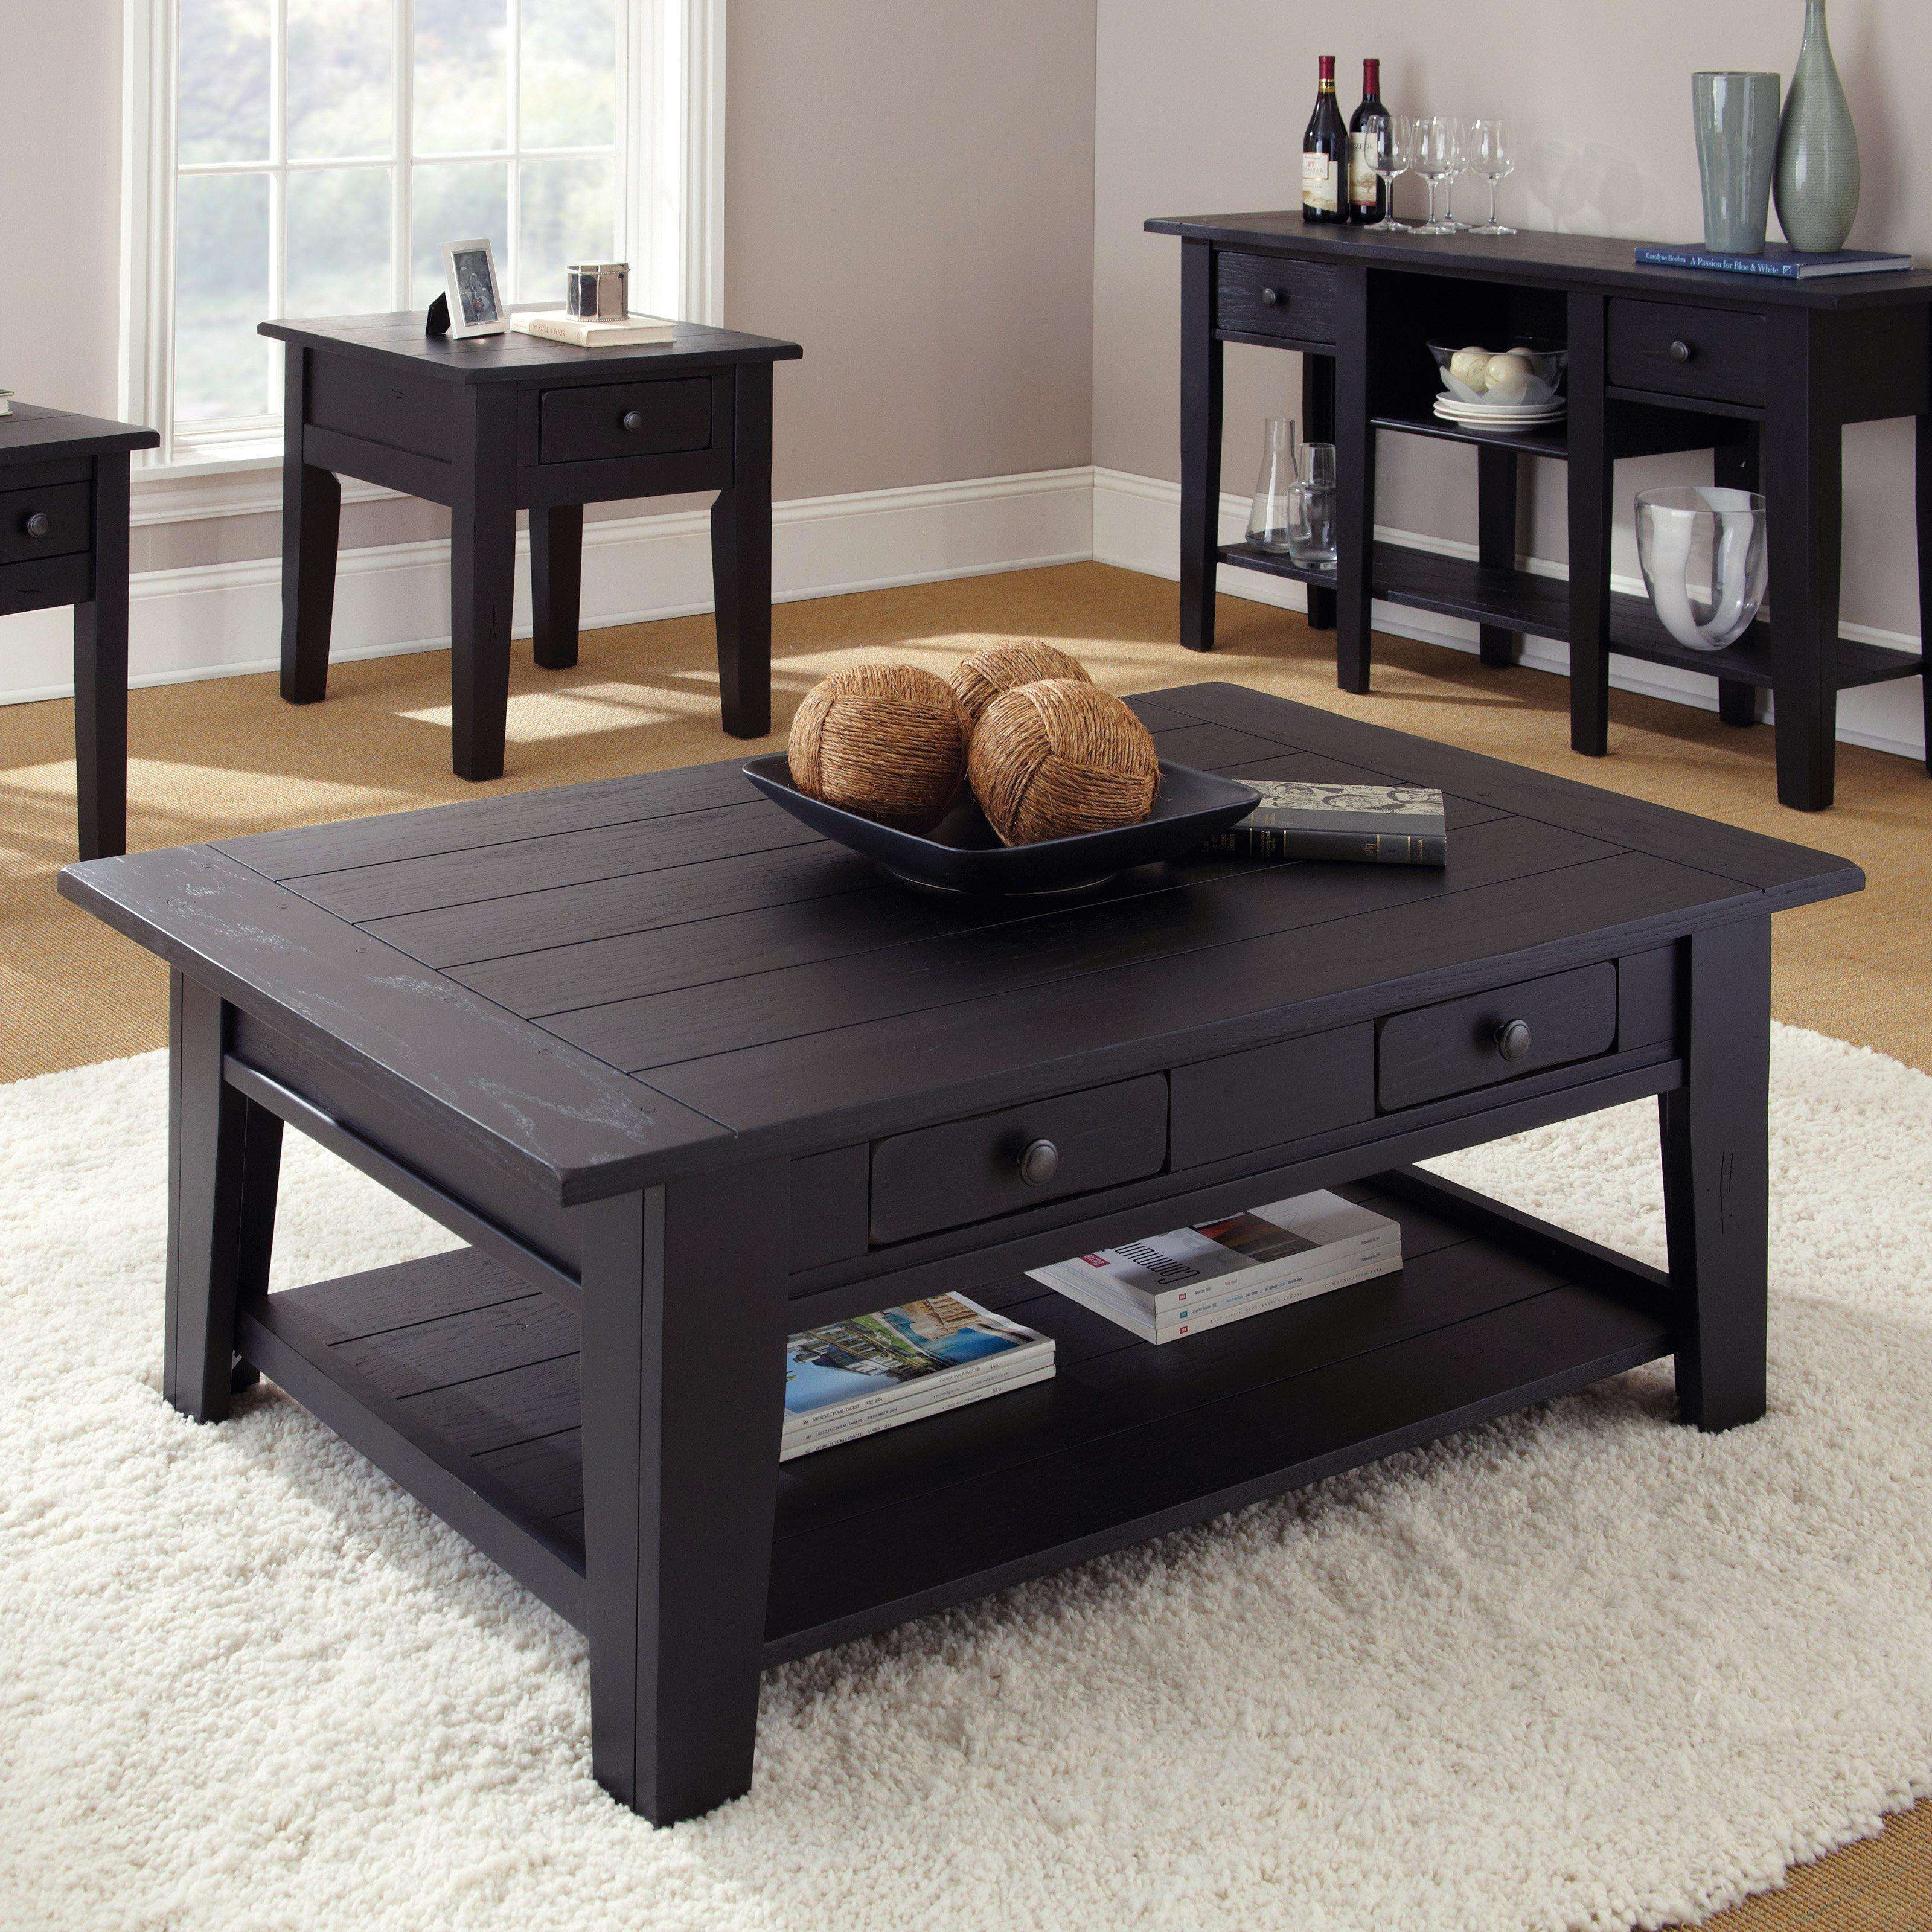 Coffee Tables : Wonderful Coffee Table Black Wood Tables With Regarding Popular Black Wood Coffee Tables (View 8 of 20)